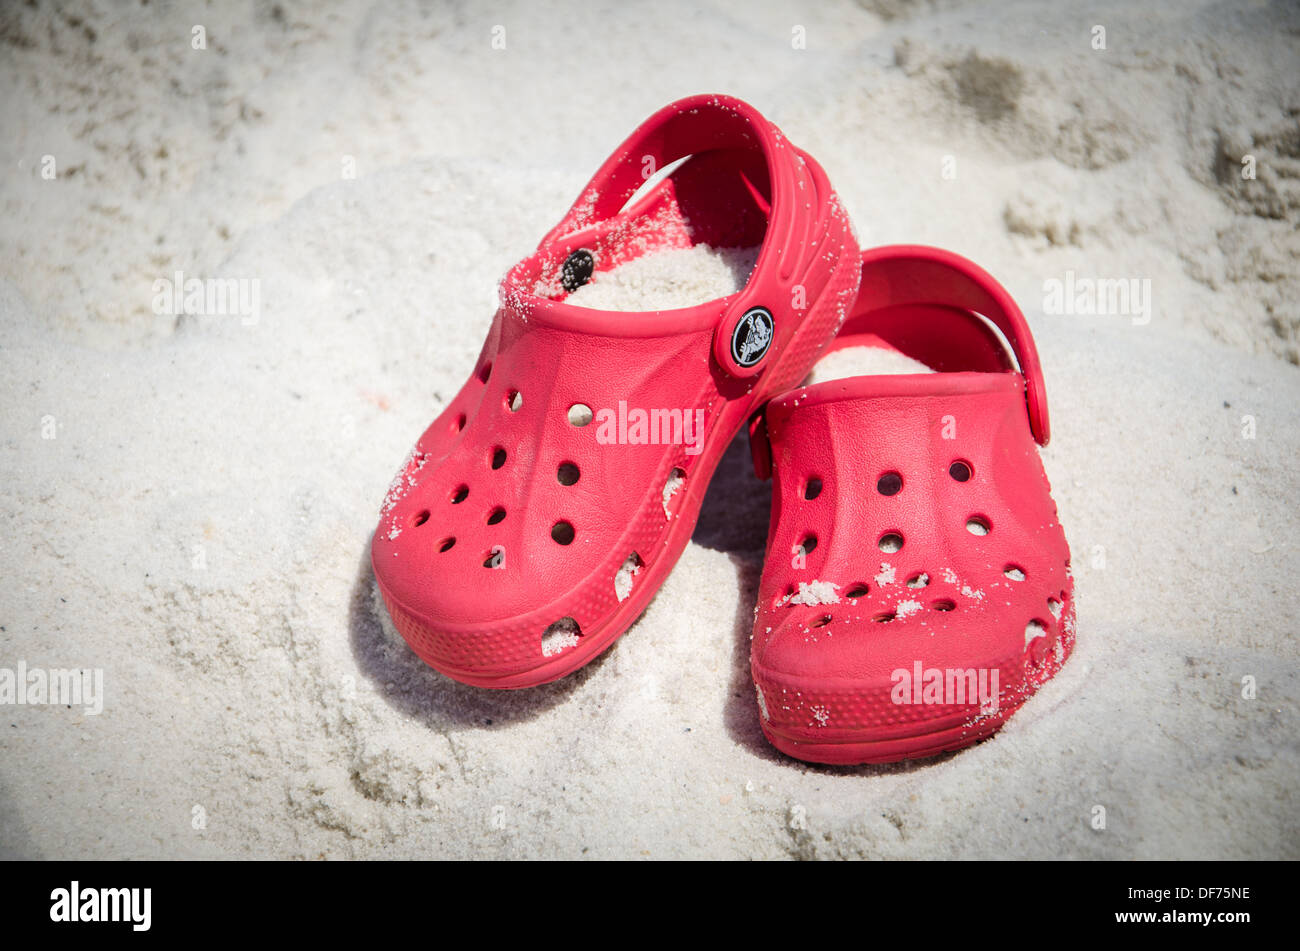 70eca01d9 Pair of Crocs shoes covered in sand on the beach - Stock Image